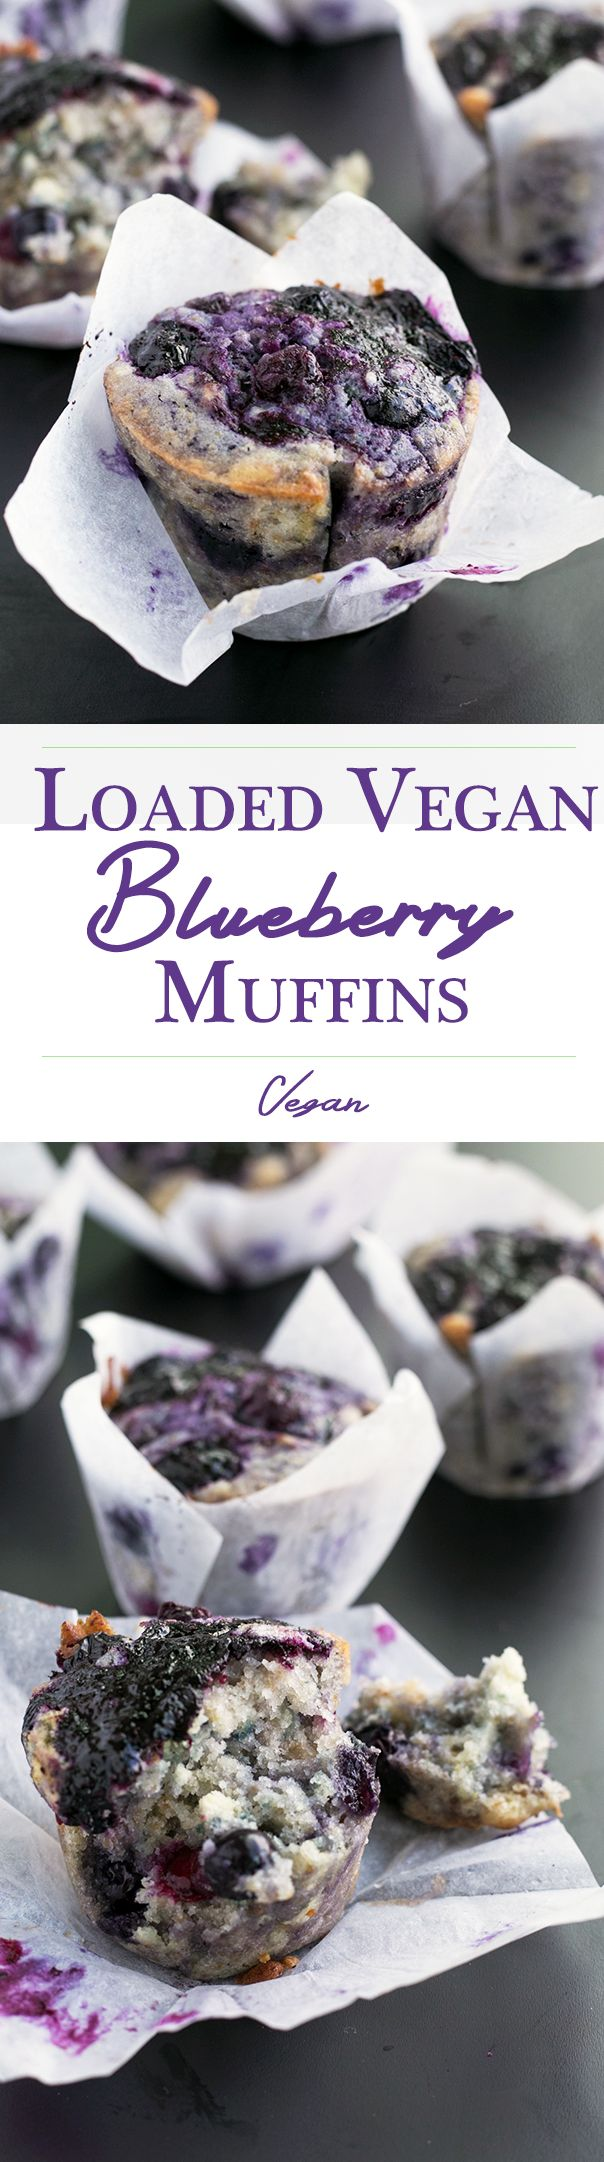 Delicious, fully loaded Vegan Blueberry Muffins. ~ vegan recipe, breakfast| healthy recipe ideas @xhealthyrecipex |